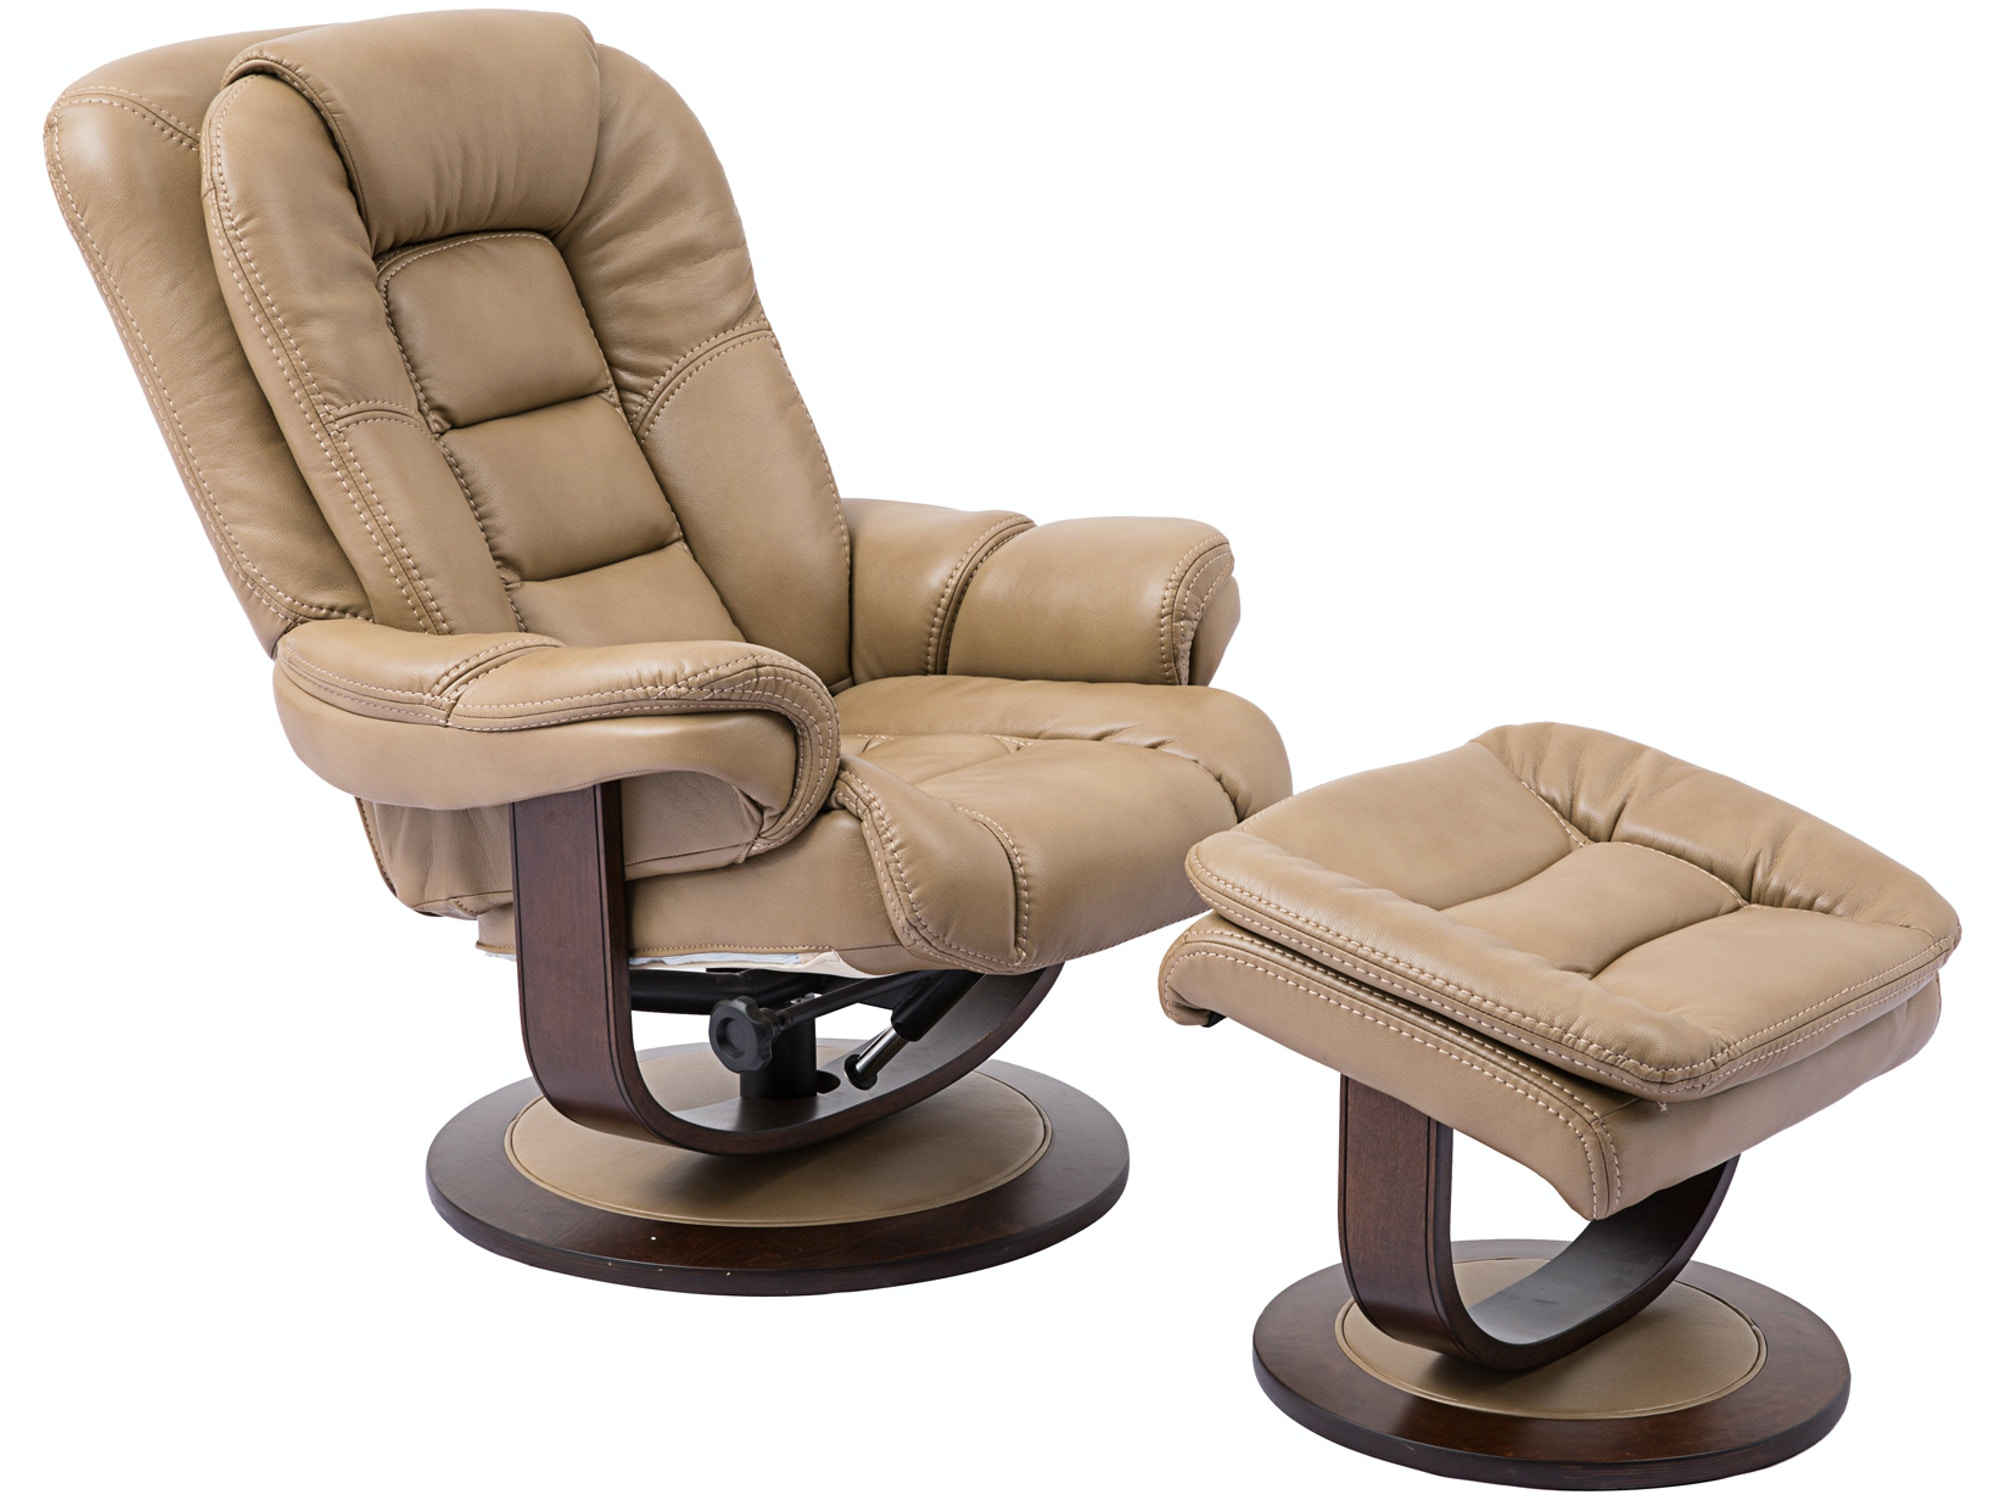 Maurice Recliner with Ottoman - Oyster 050940